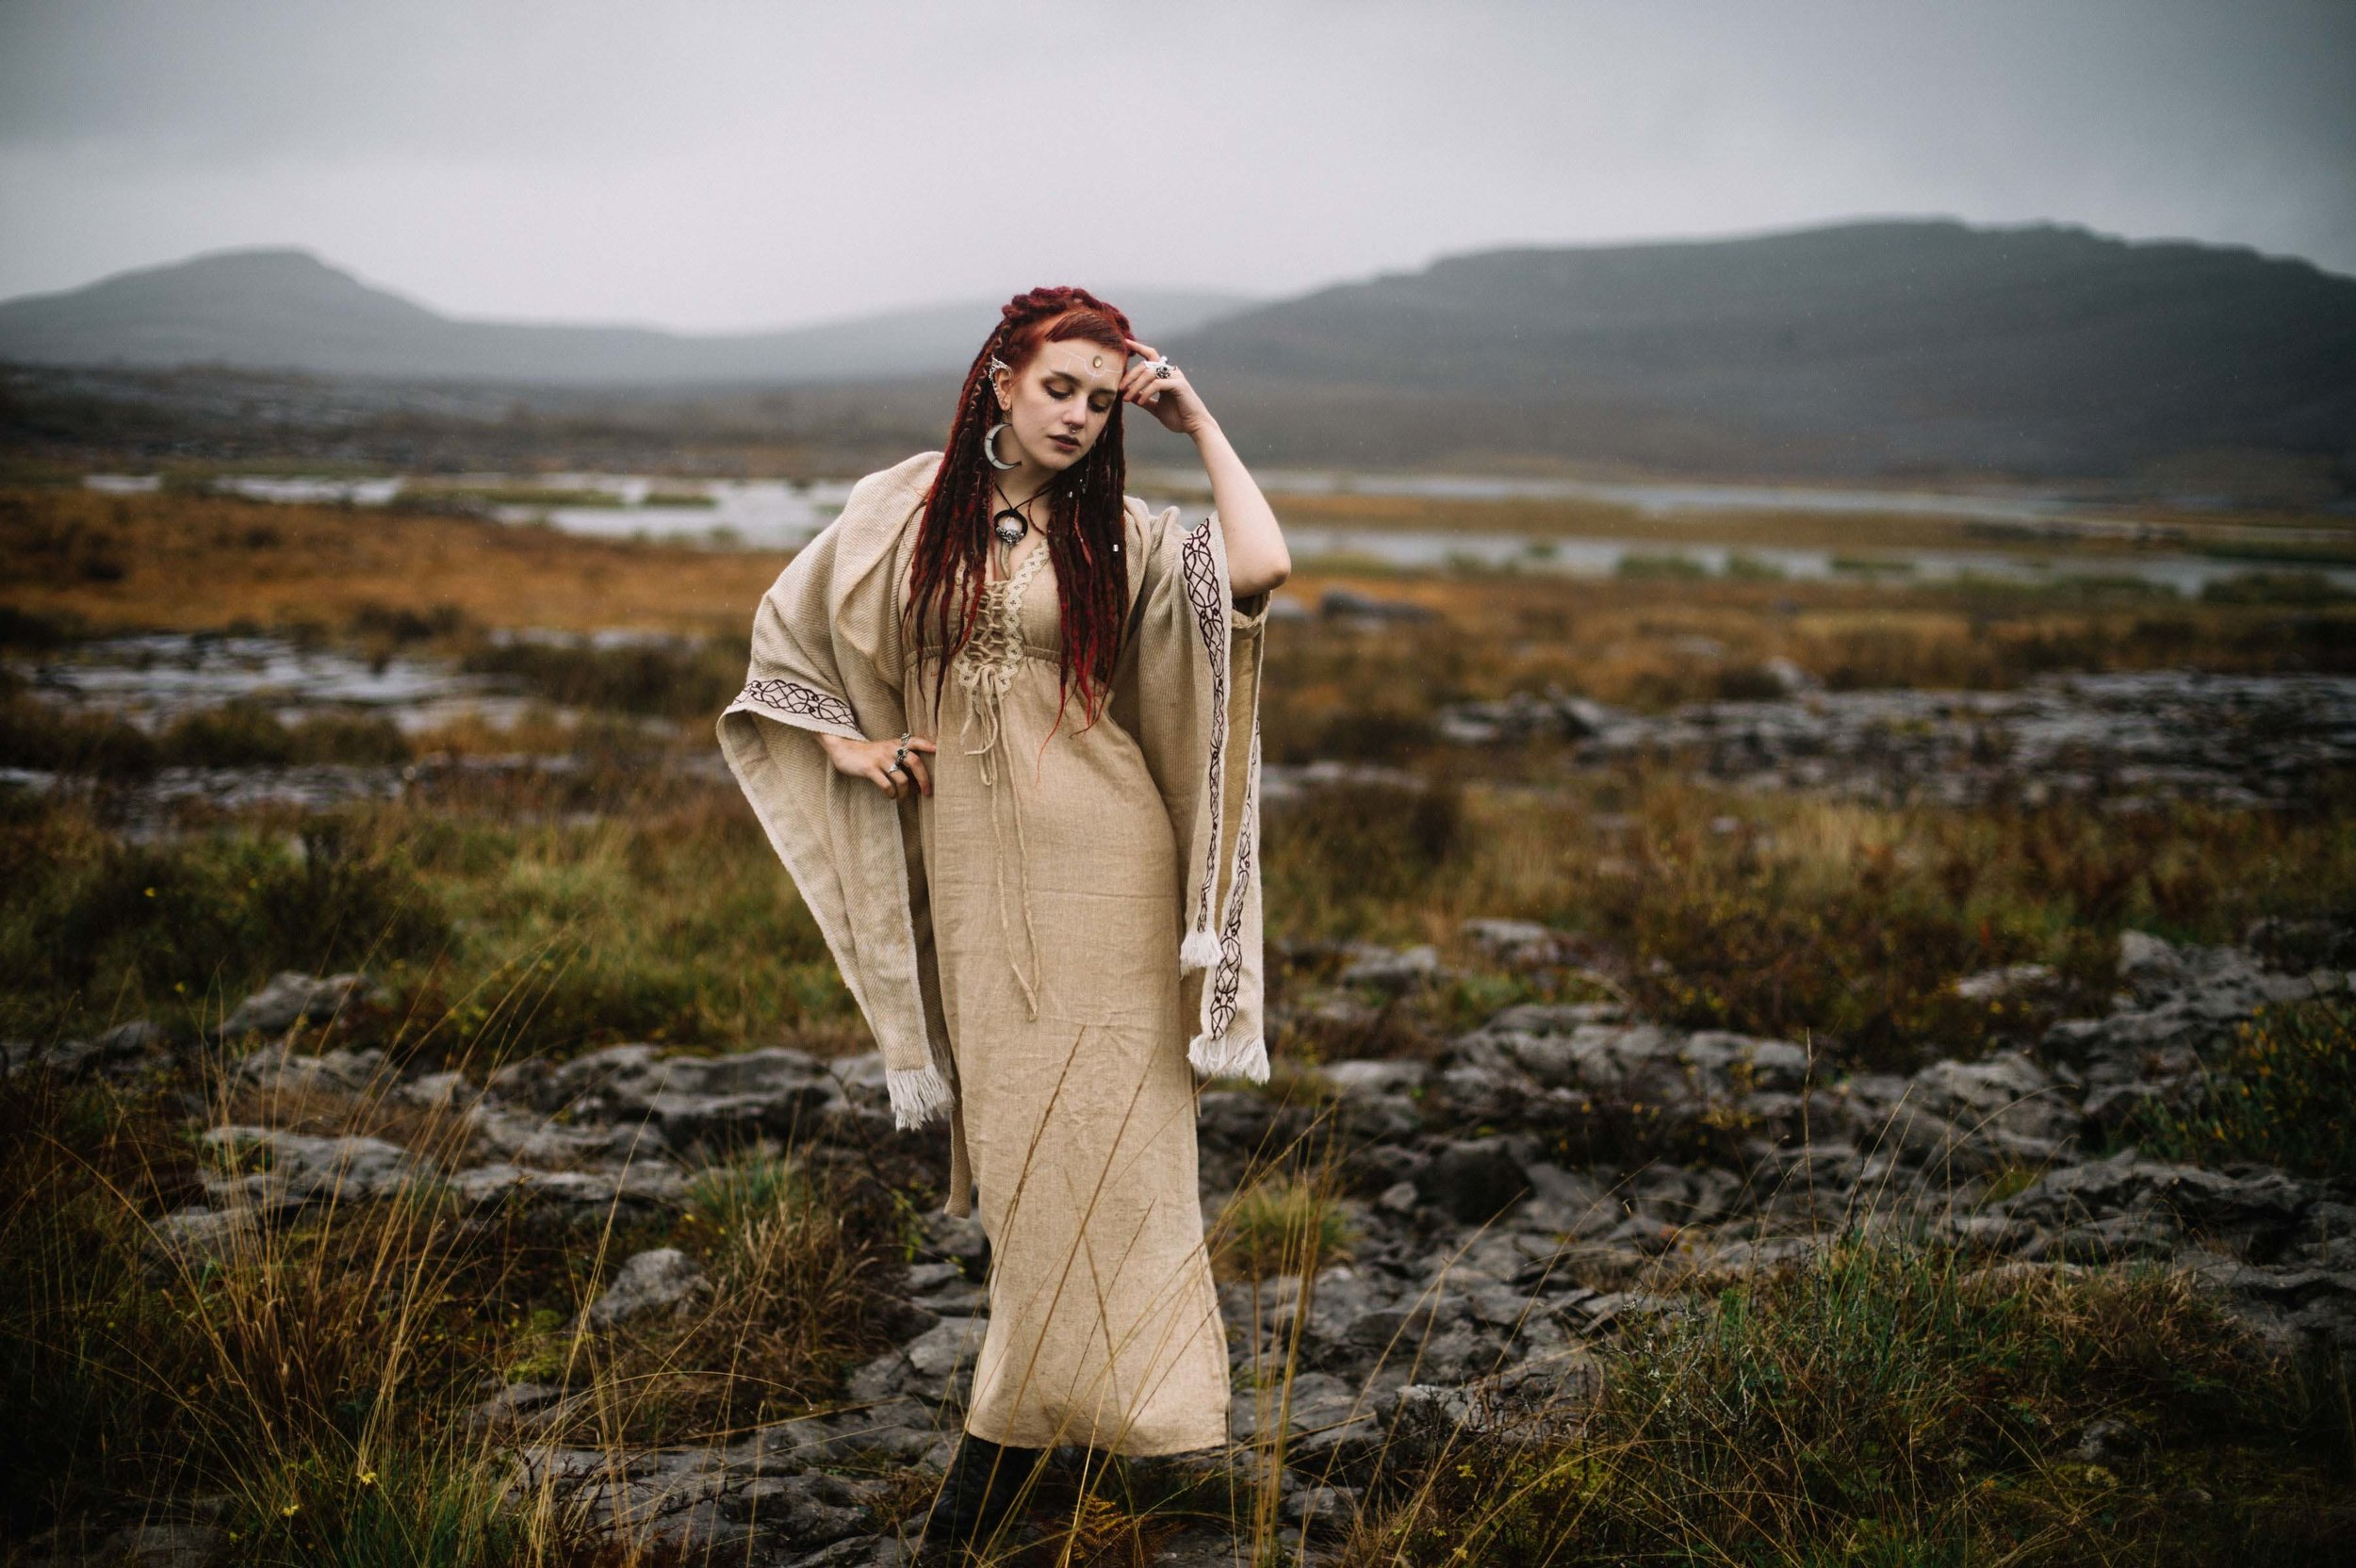 Photography by Kate Bean photoshoot in the Burren.